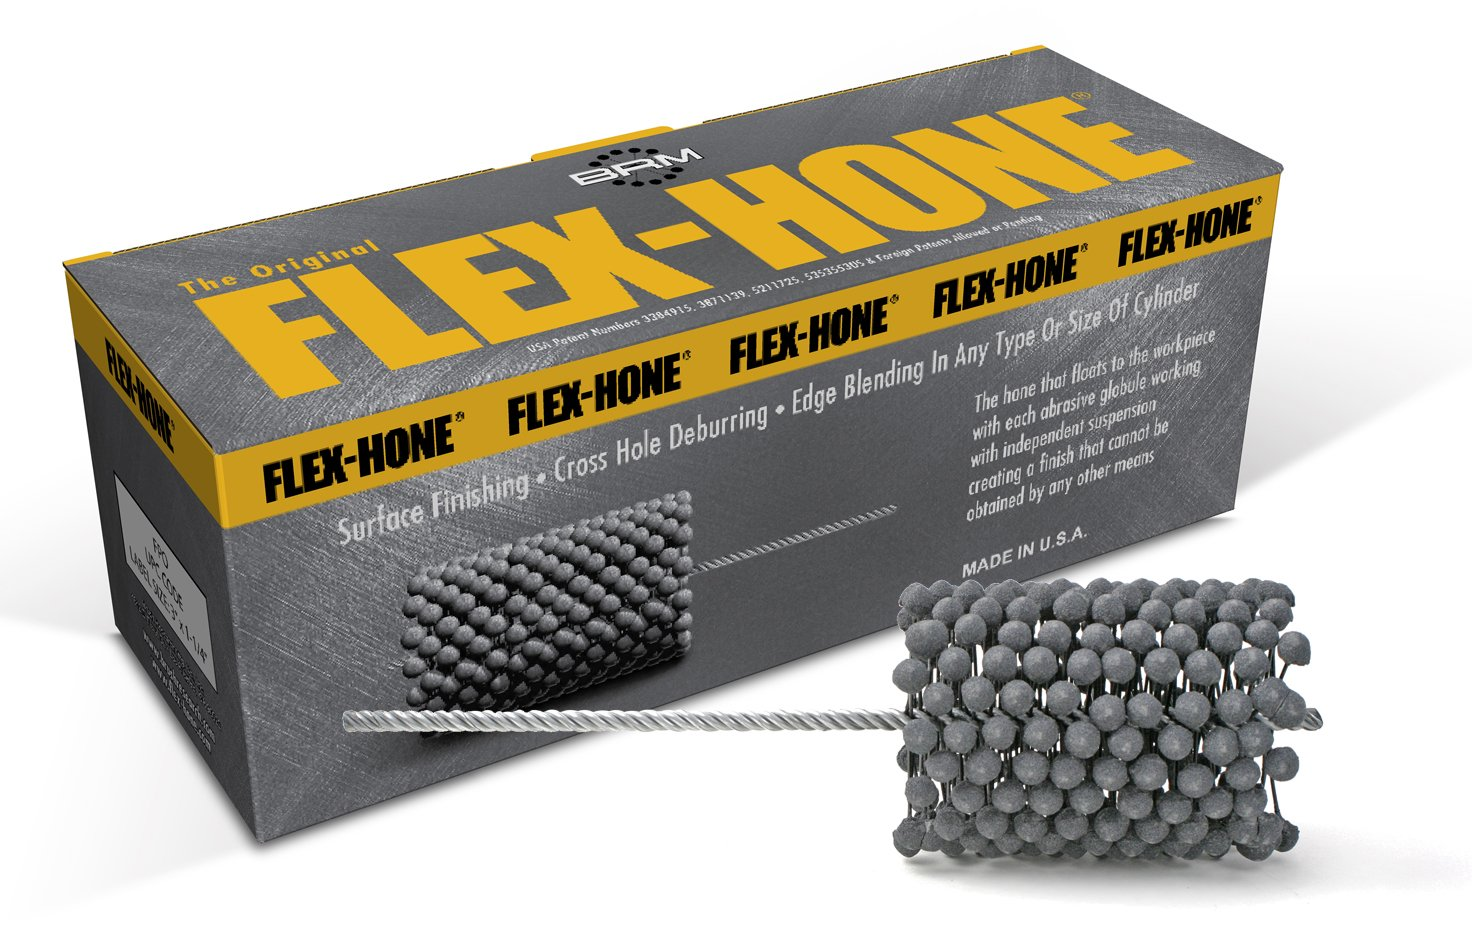 Brush Research FLEX-HONE Cylinder Hone GBD Series Diameter 180 Grit Size 95 mm Silicon Carbide Abrasive 3-3//4